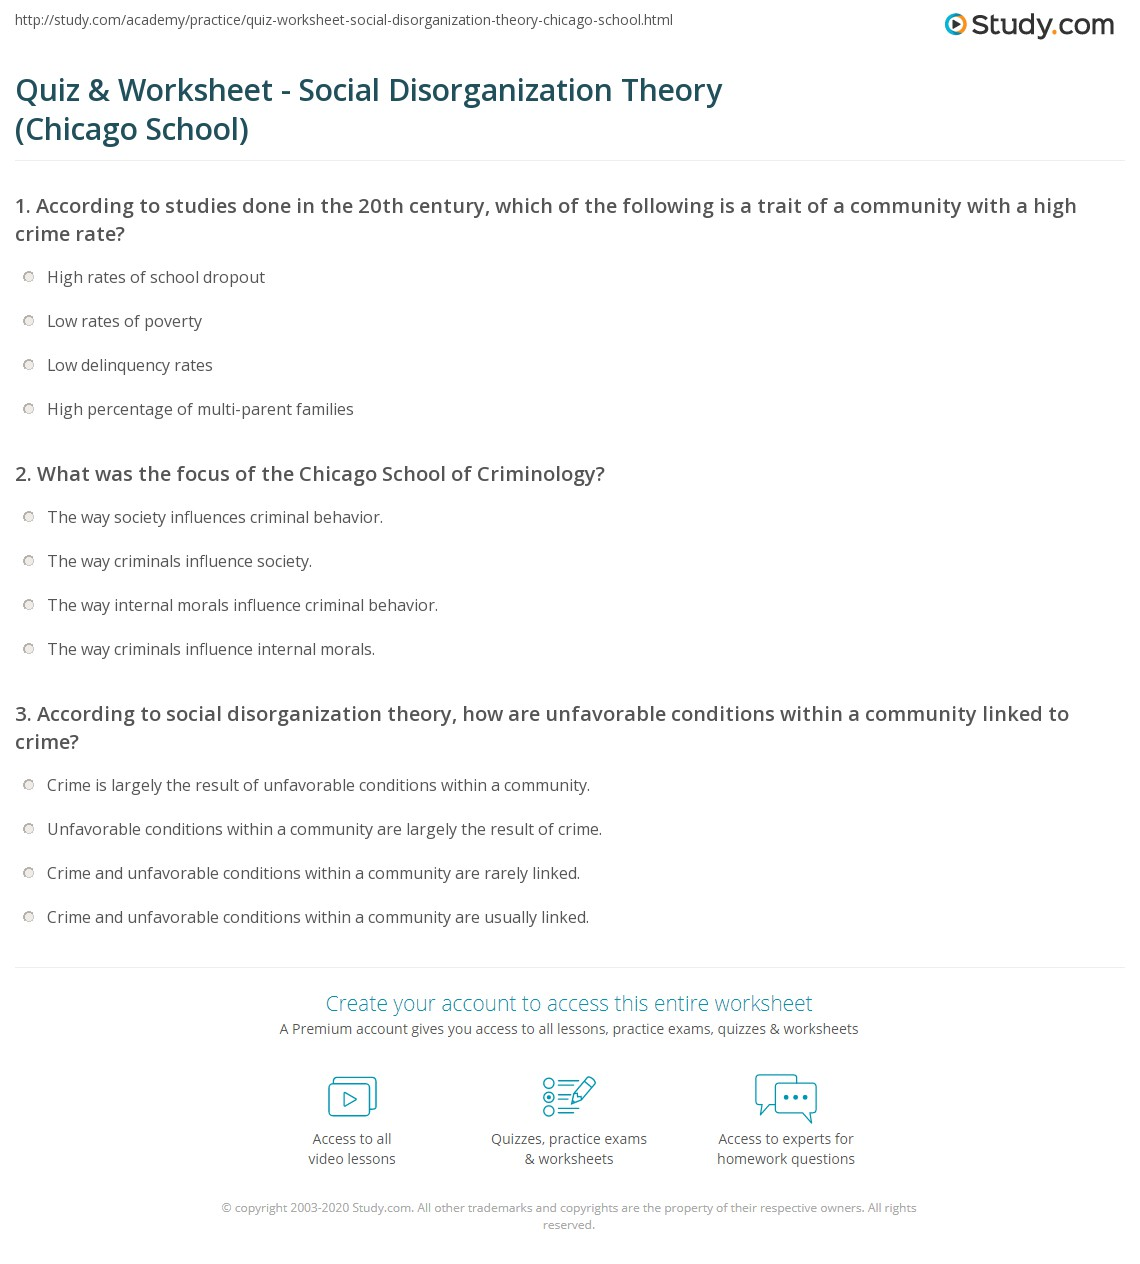 social disorganization theory essay Interested in the effects of social disorganization theory within a community essay bookmark it to view later bookmark the effects of social disorganization theory within a community essay.